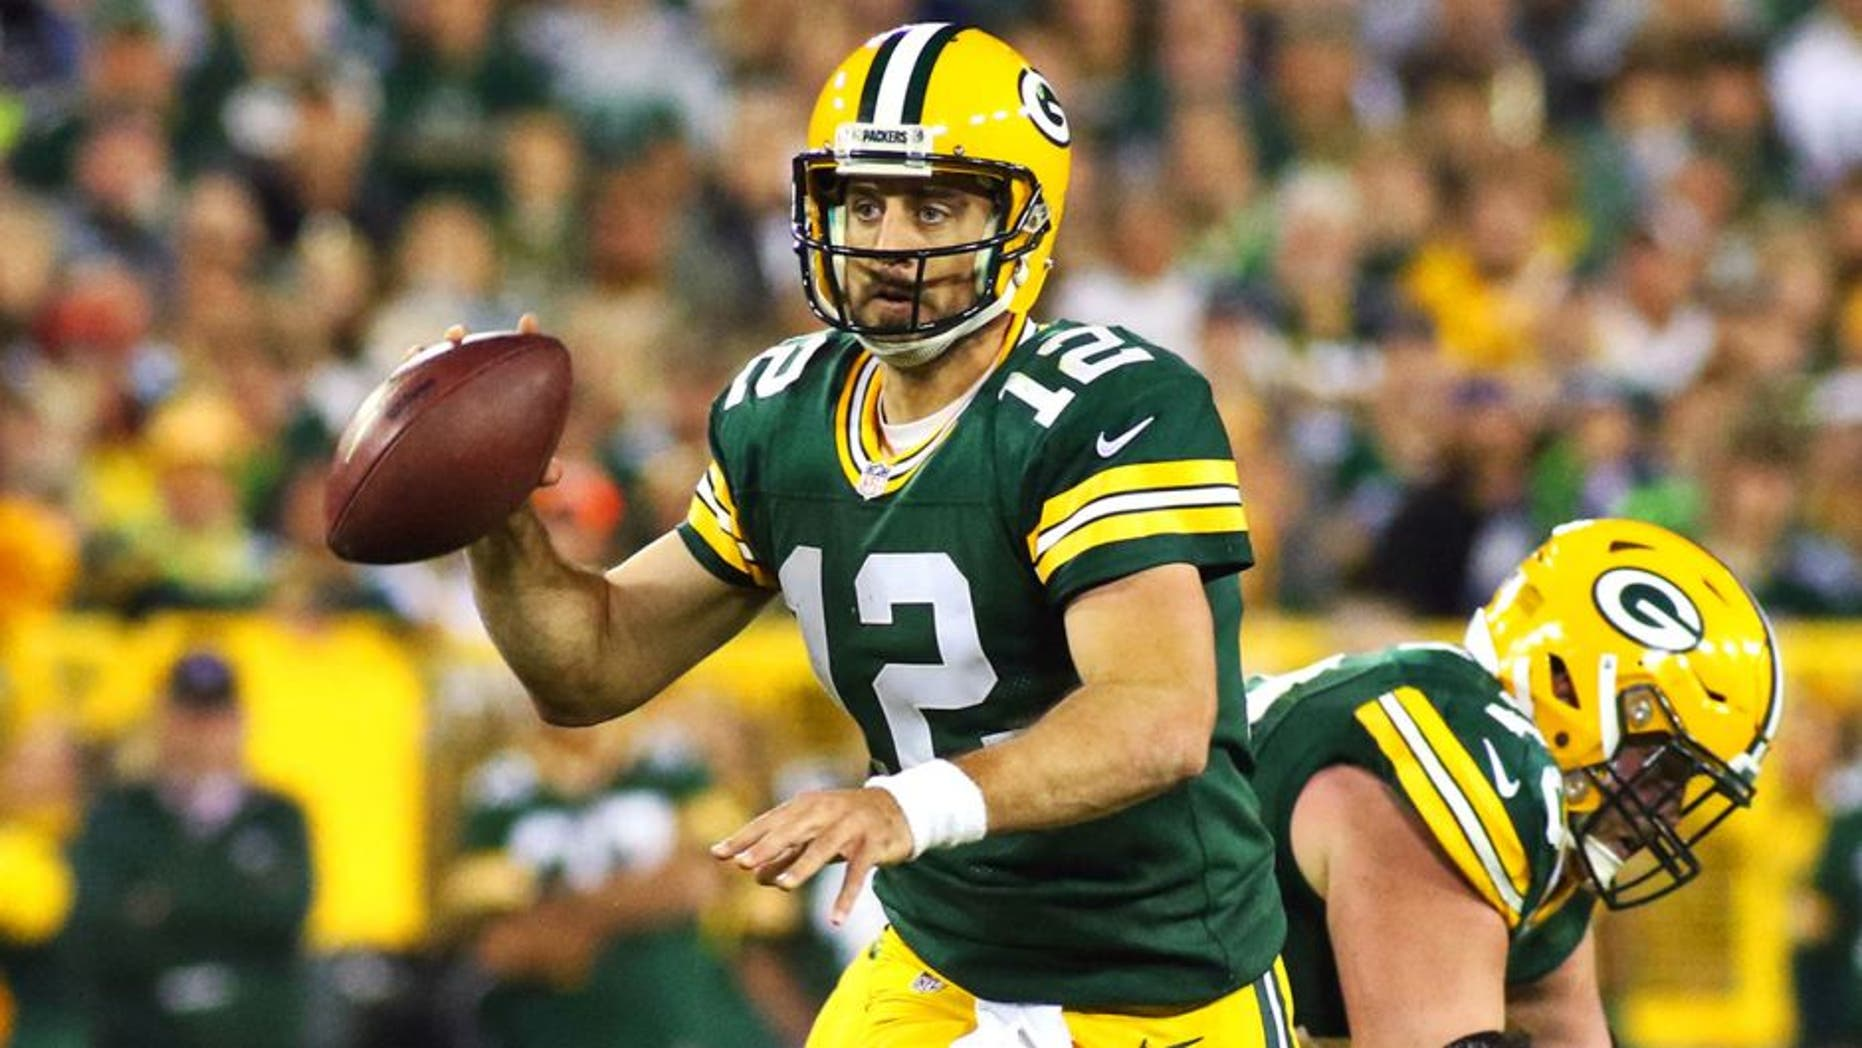 Sep 20, 2015; Green Bay, WI, USA; Green Bay Packers quarterback Aaron Rodgers (12) against the Seattle Seahawks during the second half at Lambeau Field. Packers won 27-17. Mandatory Credit: Ray Carlin-USA TODAY Sports